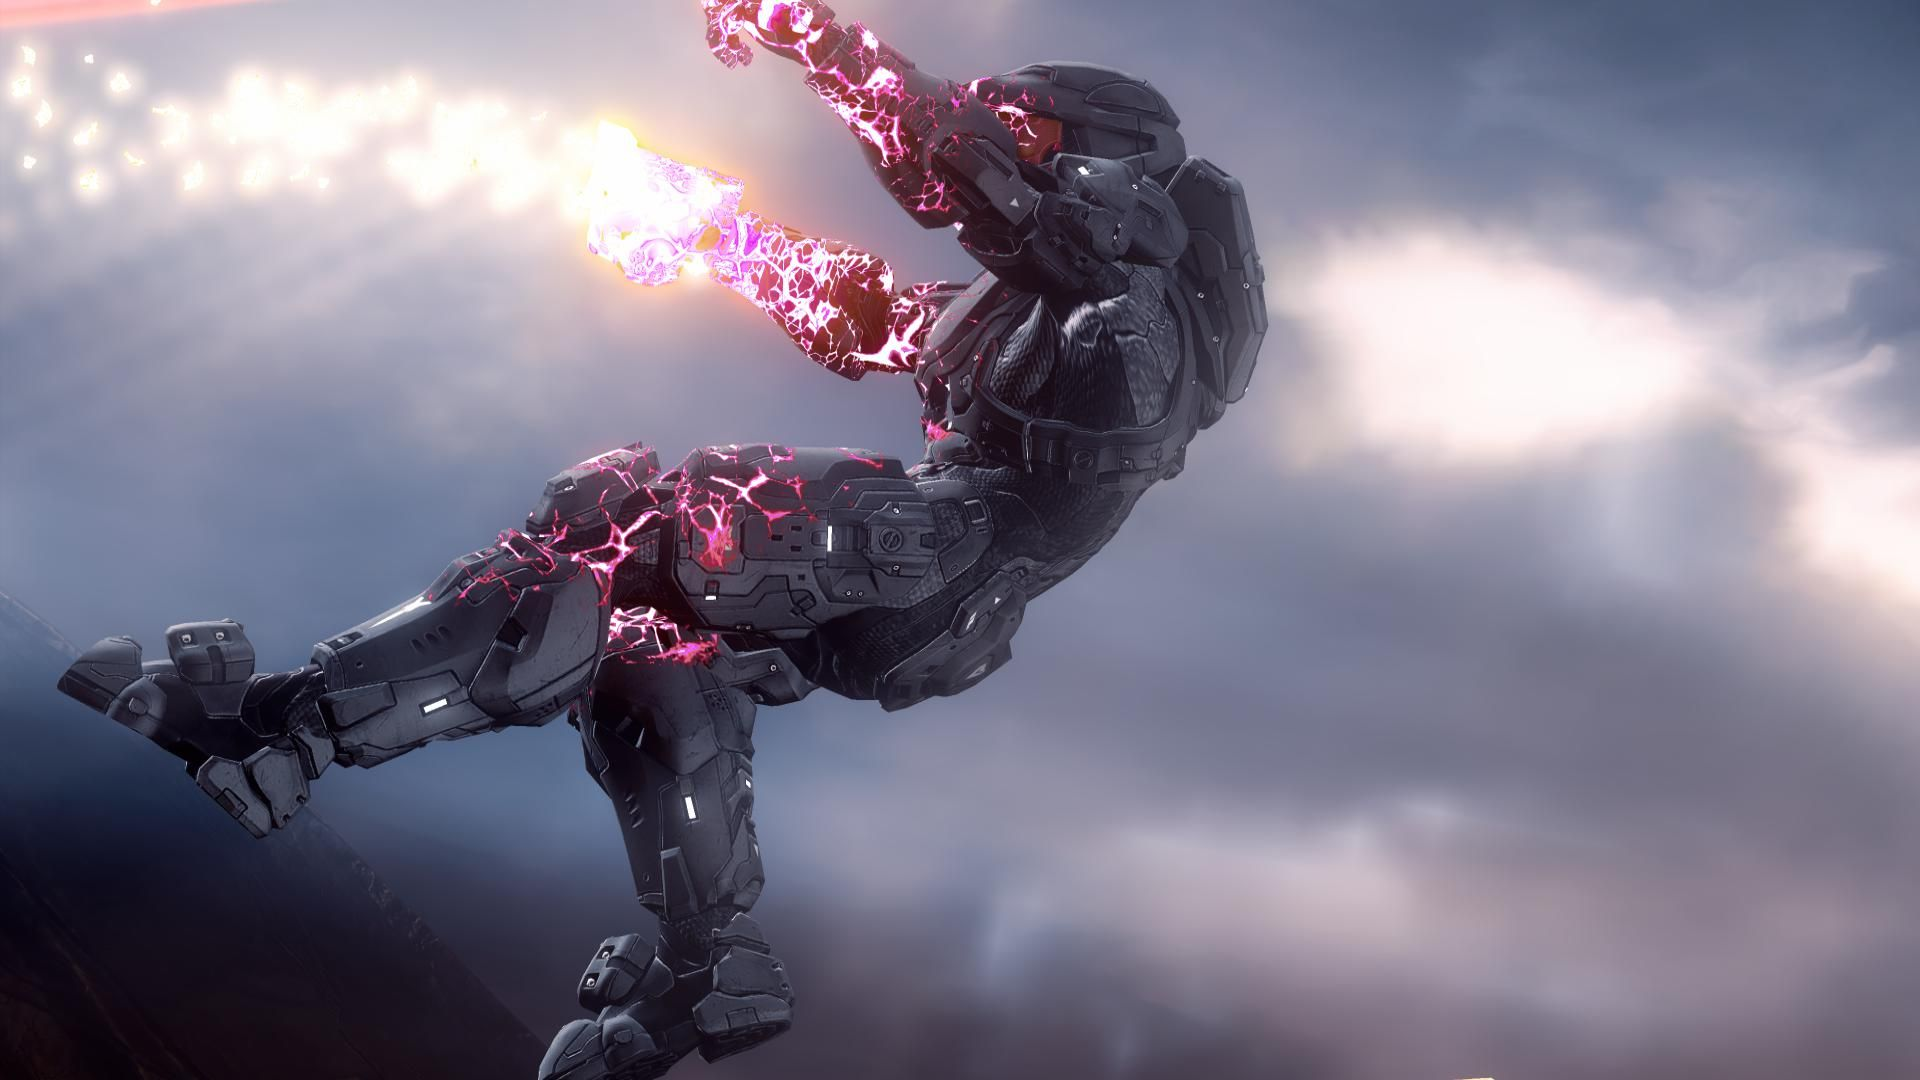 Oh He Dead Halo 5 Halo 5 Guardians Halo